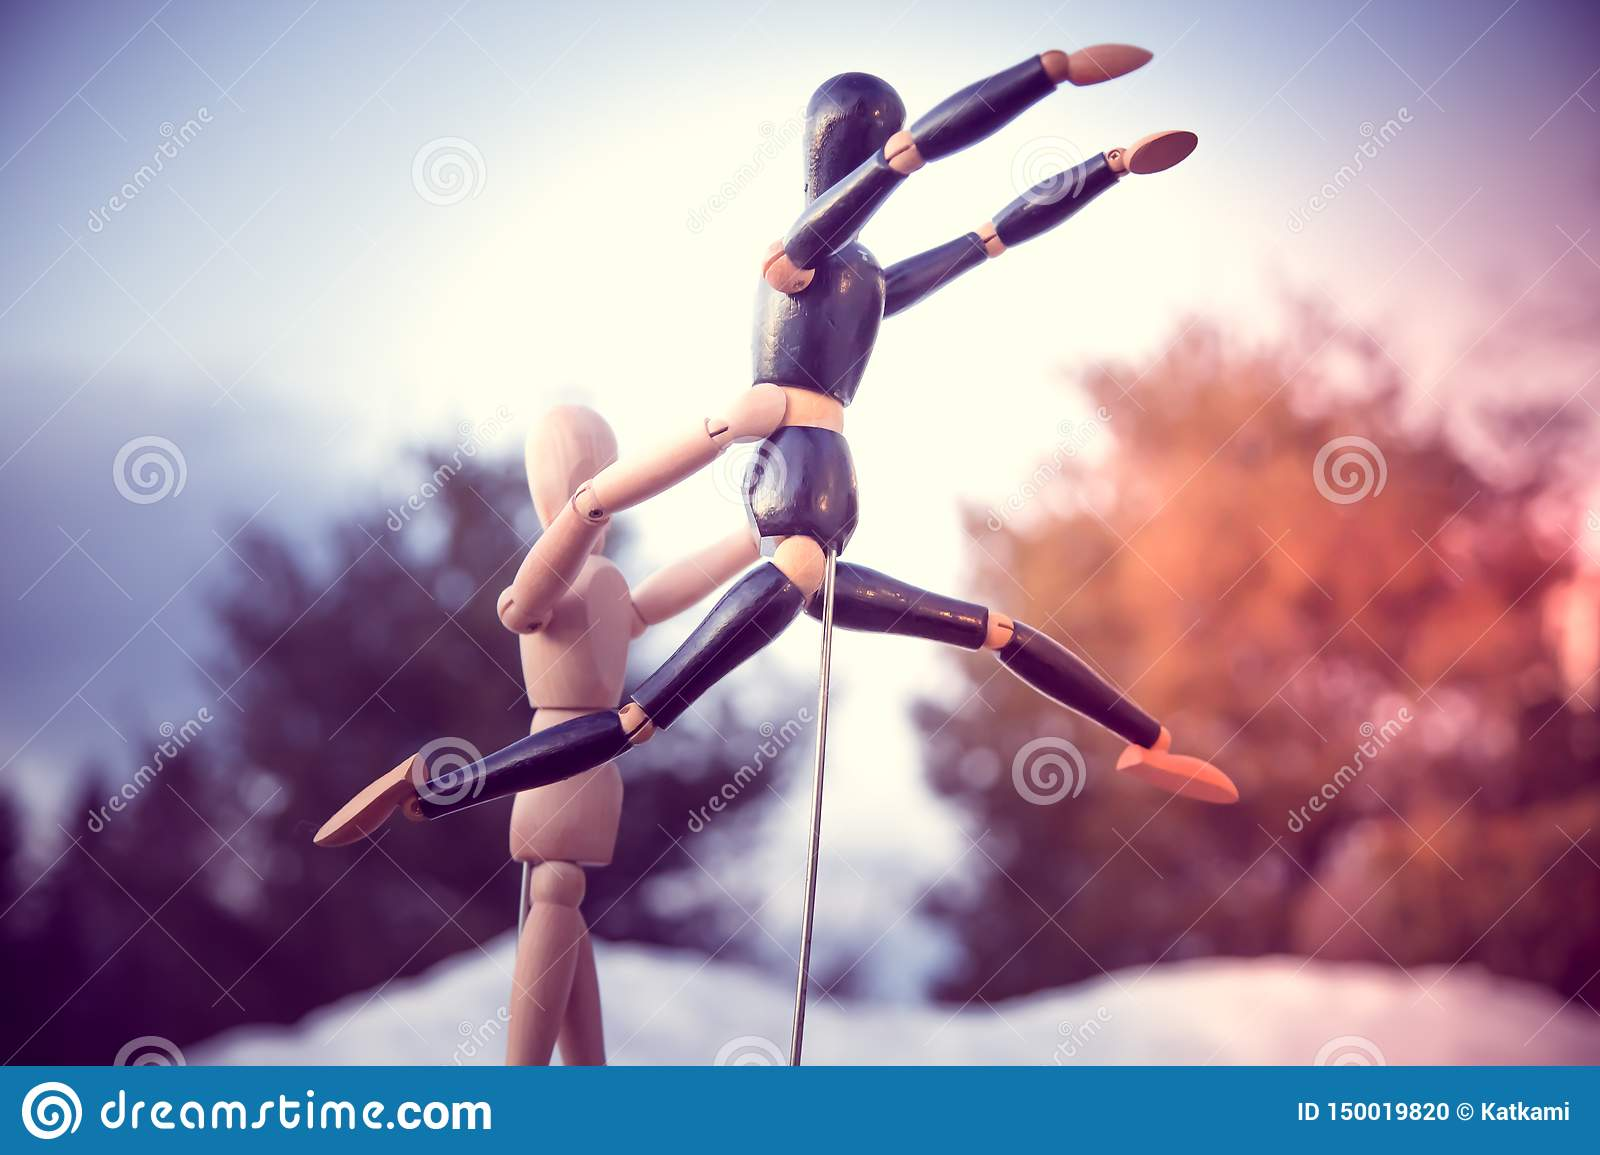 Wooden mannequin helping other mannequin jump